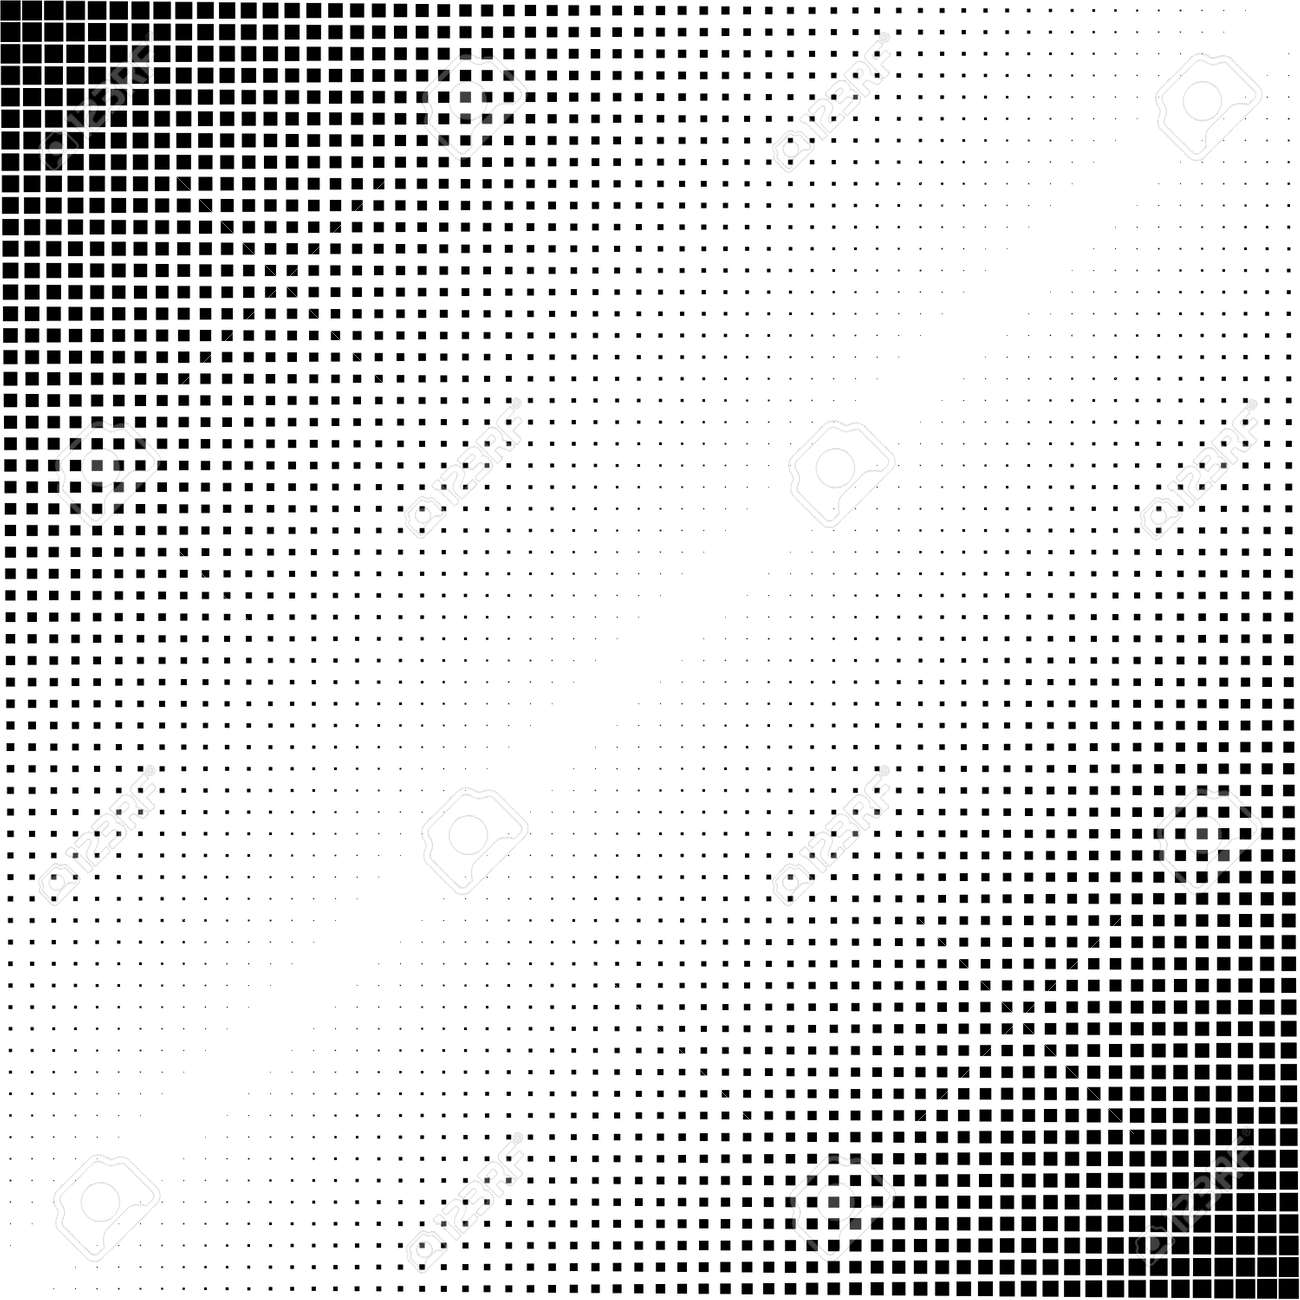 Squares halftone geometric background pattern and texture vector illustration - 167792902